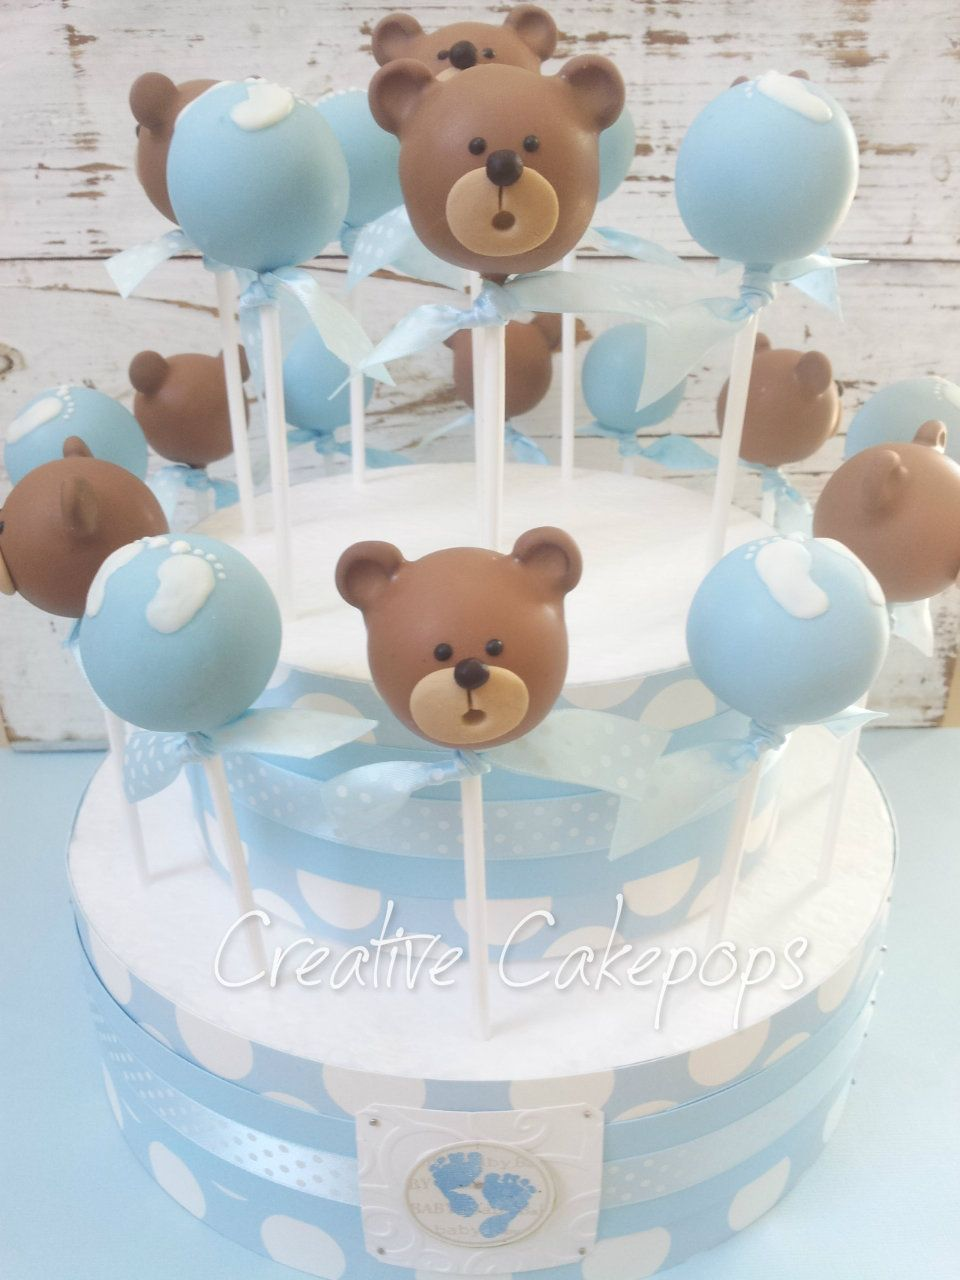 Babyparty Junge Teddy Bear And Baby Feet Cake Pops For Baby Shower